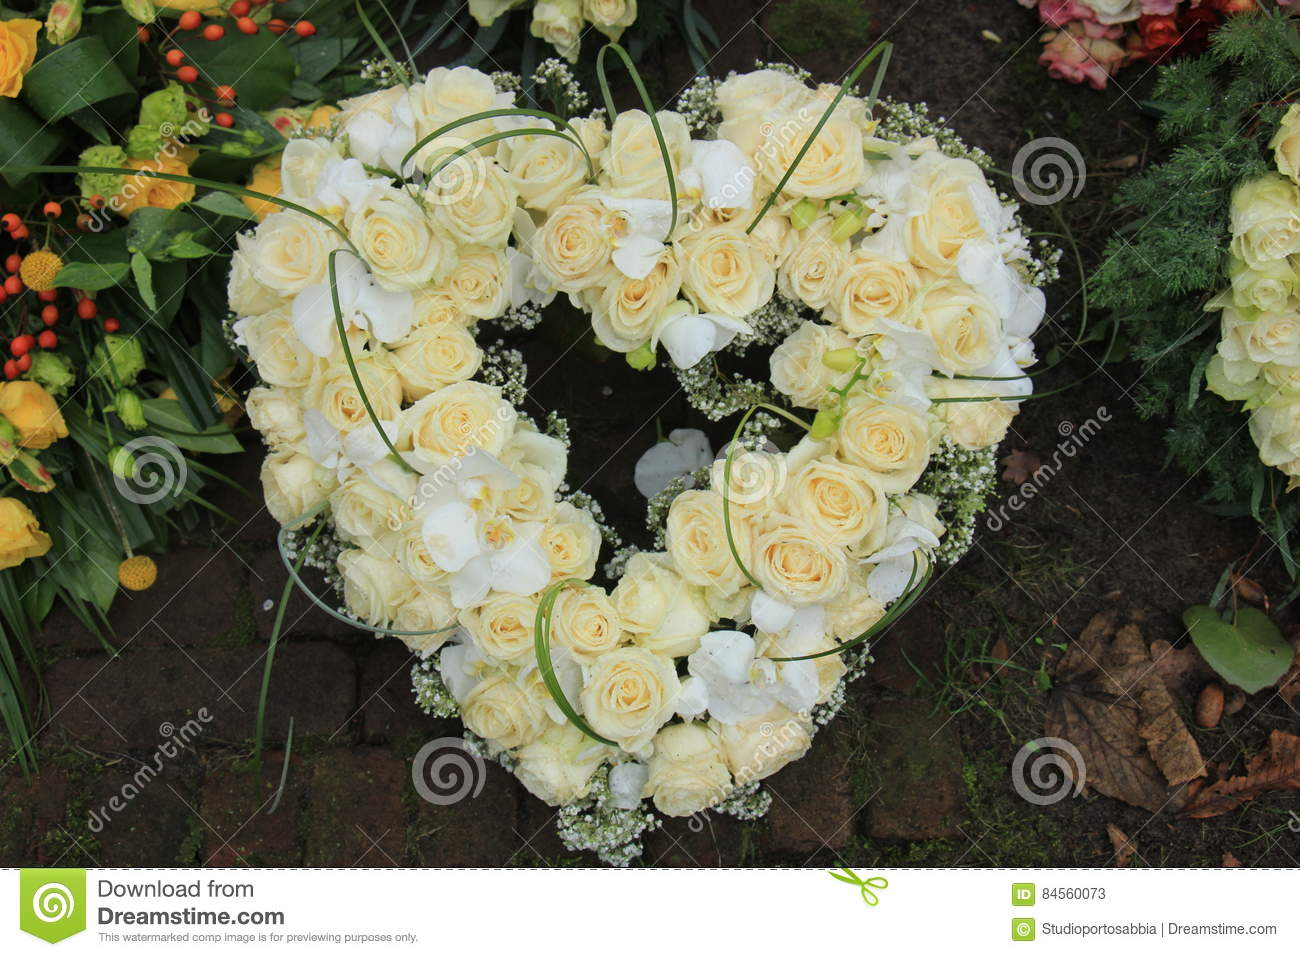 Heart shaped sympathy wreath near a tree stock image image of heart shaped sympathy wreath near a tree izmirmasajfo